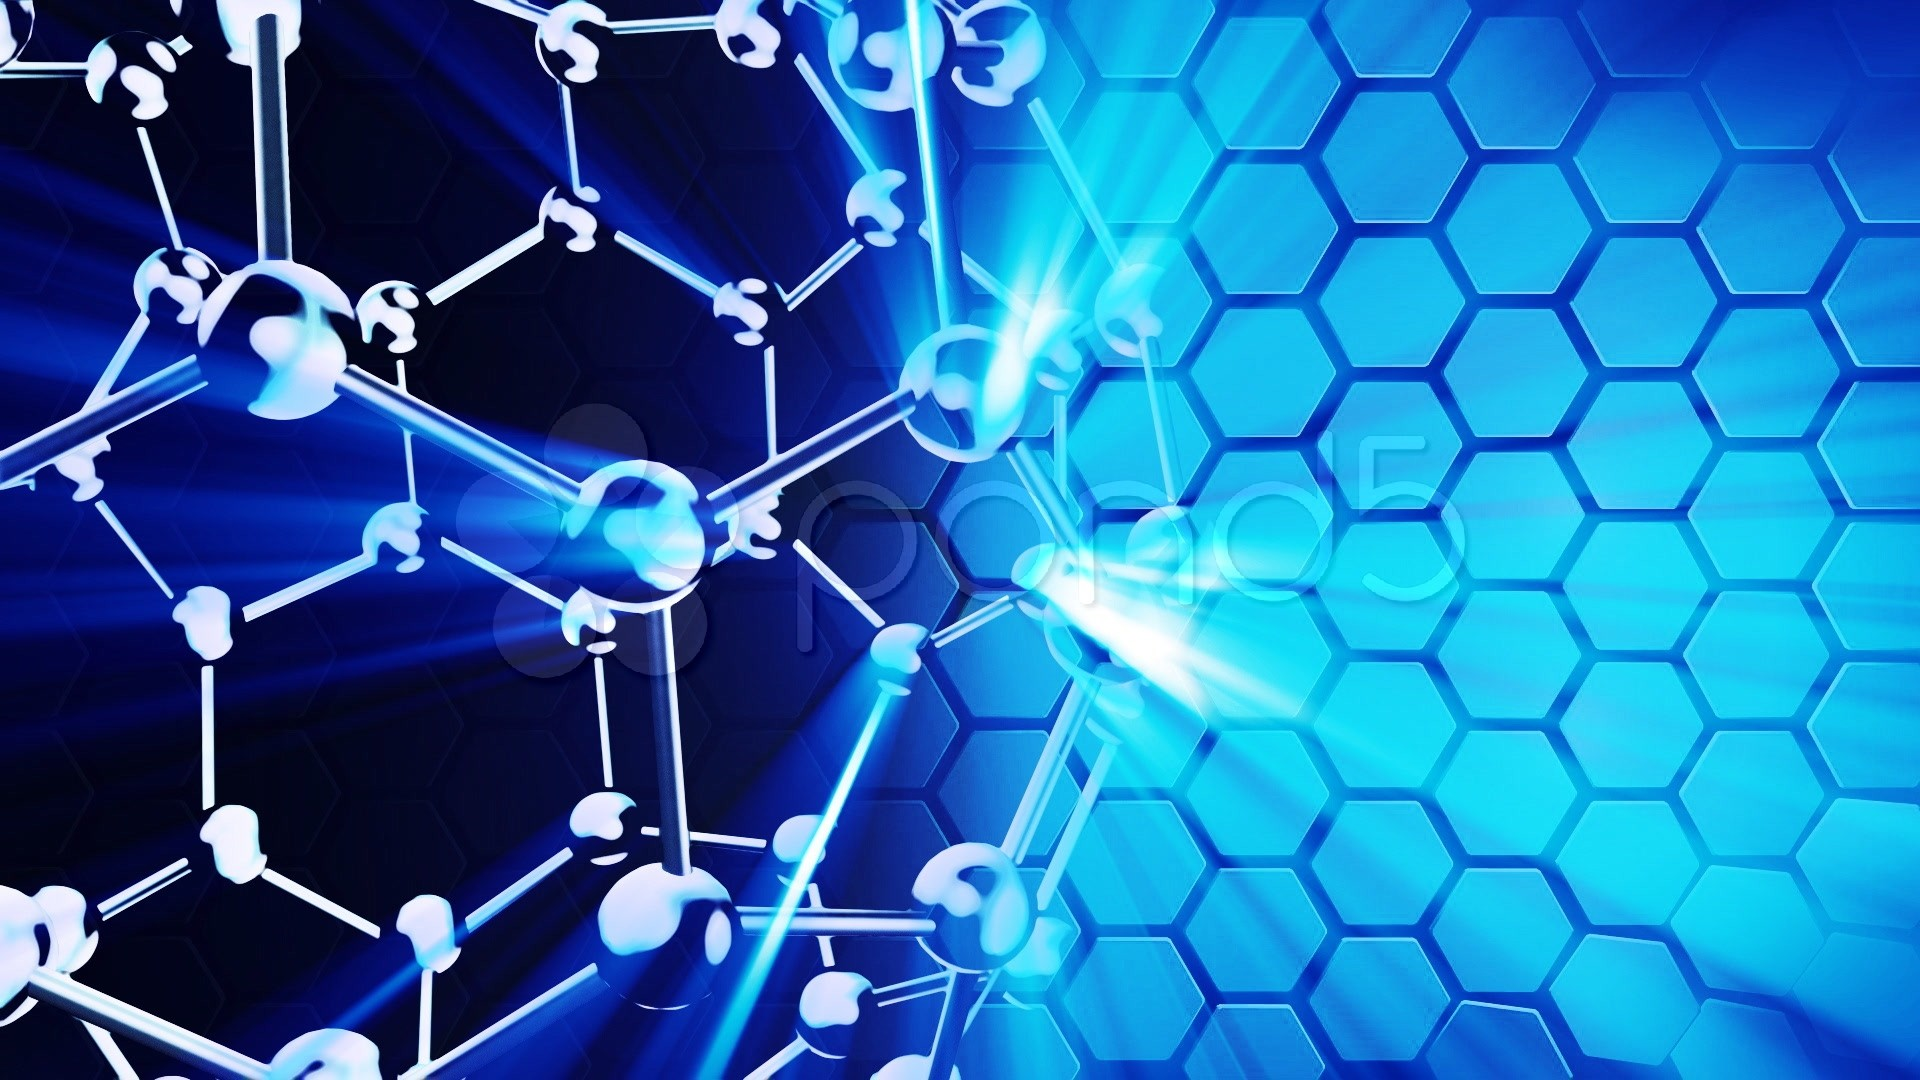 Biochemistry Wallpapers High Resolution: Chemistry Wallpapers (70+ Background Pictures